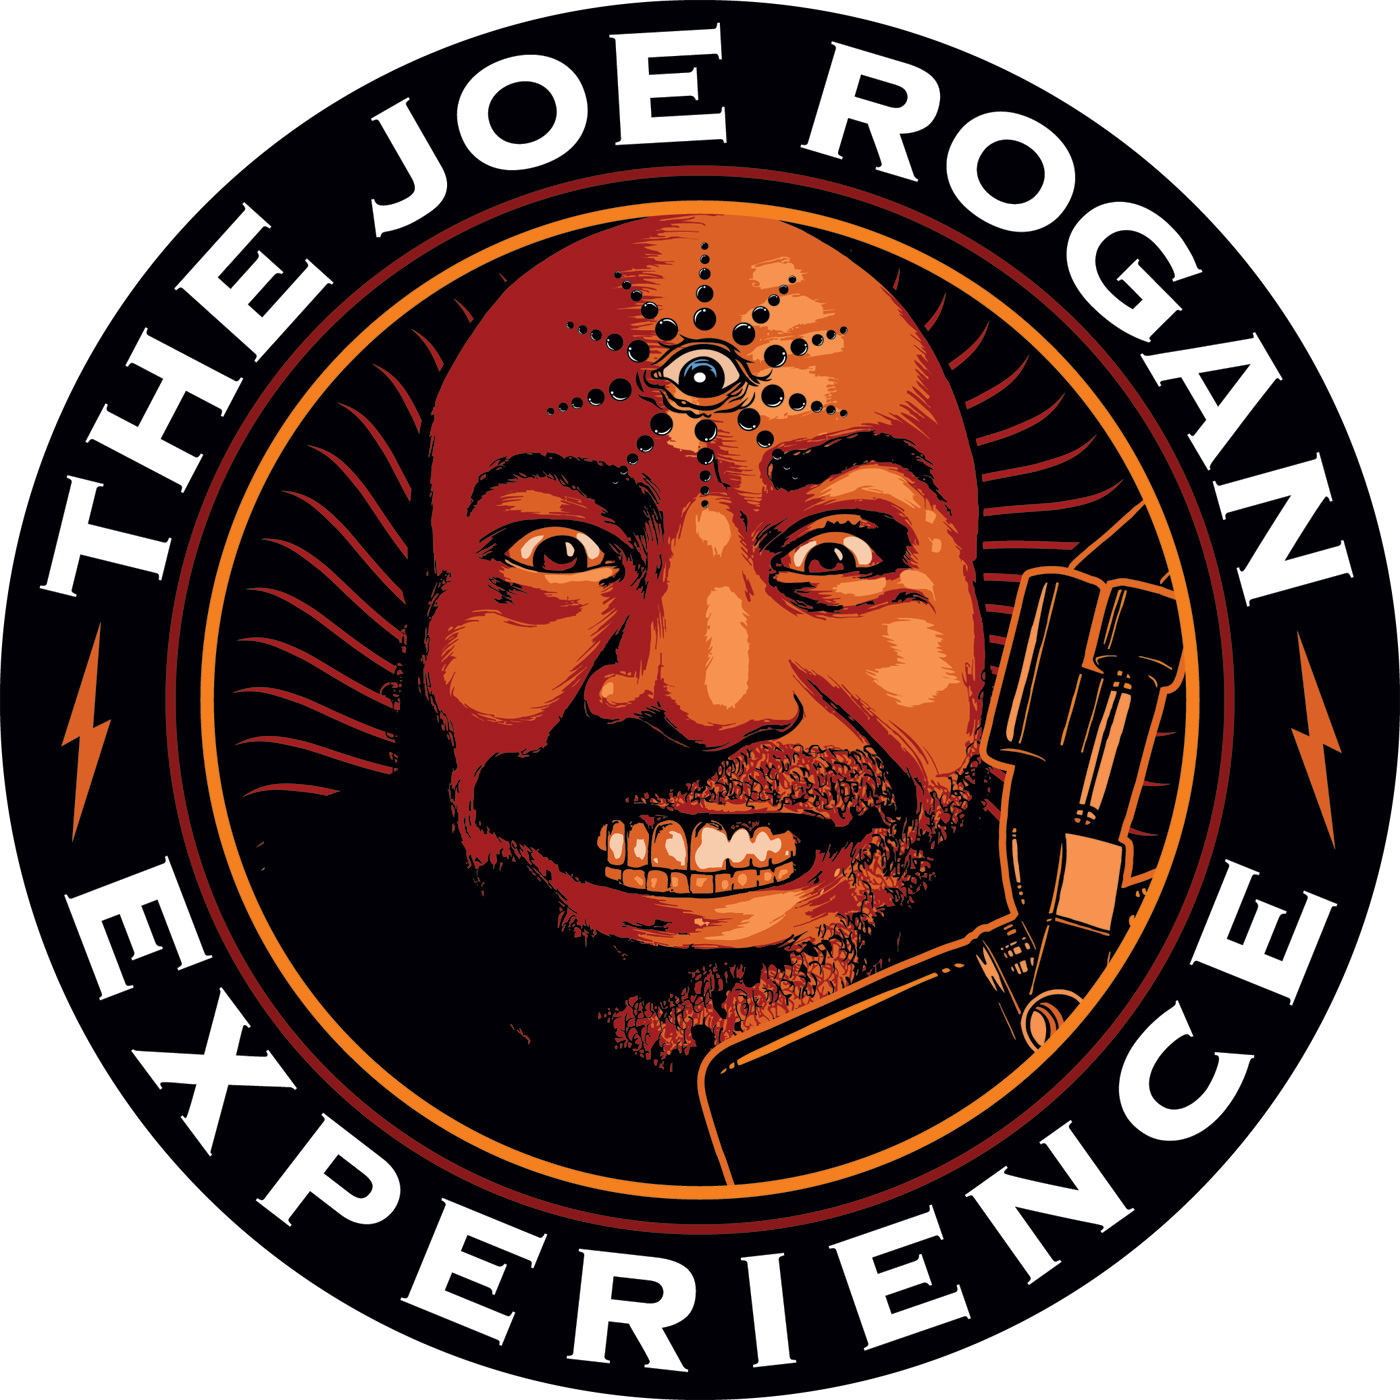 The Joe Rogan Experience Fight Companion - June 28, 2014 (Part 1)